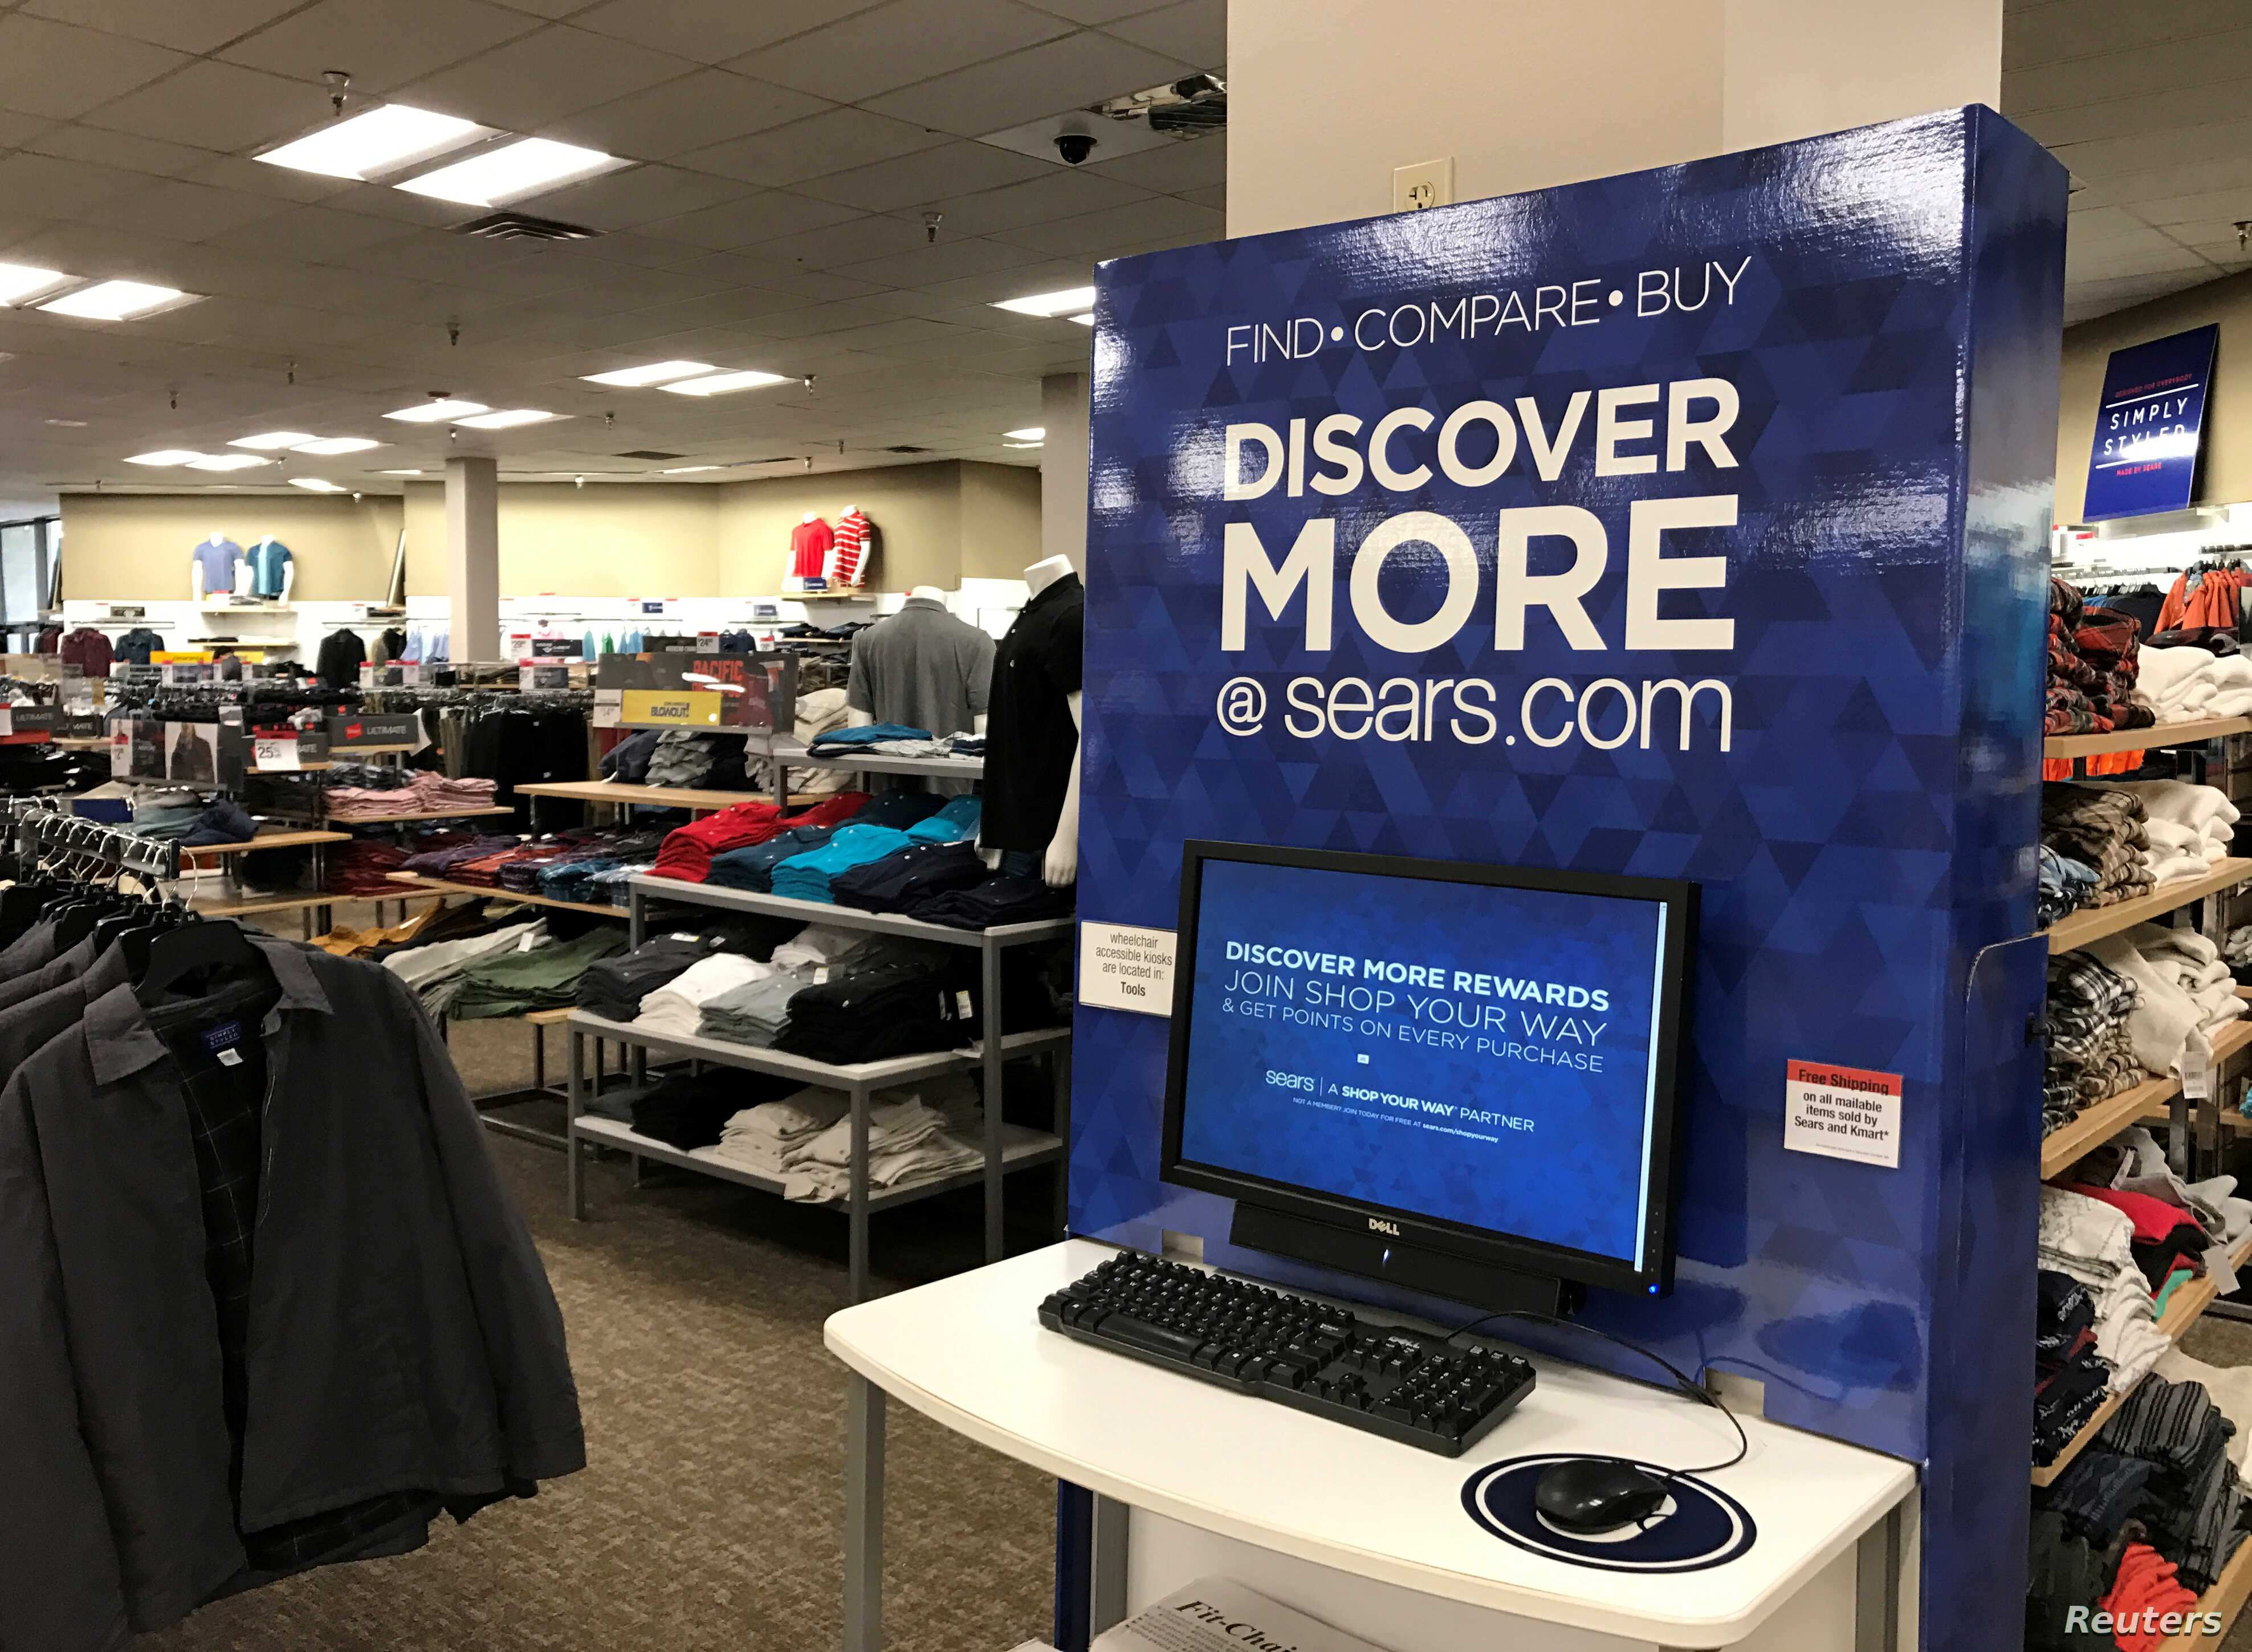 Analysts Us Cyber Monday Sales Could Set New Online Spending Record Voice Of America English